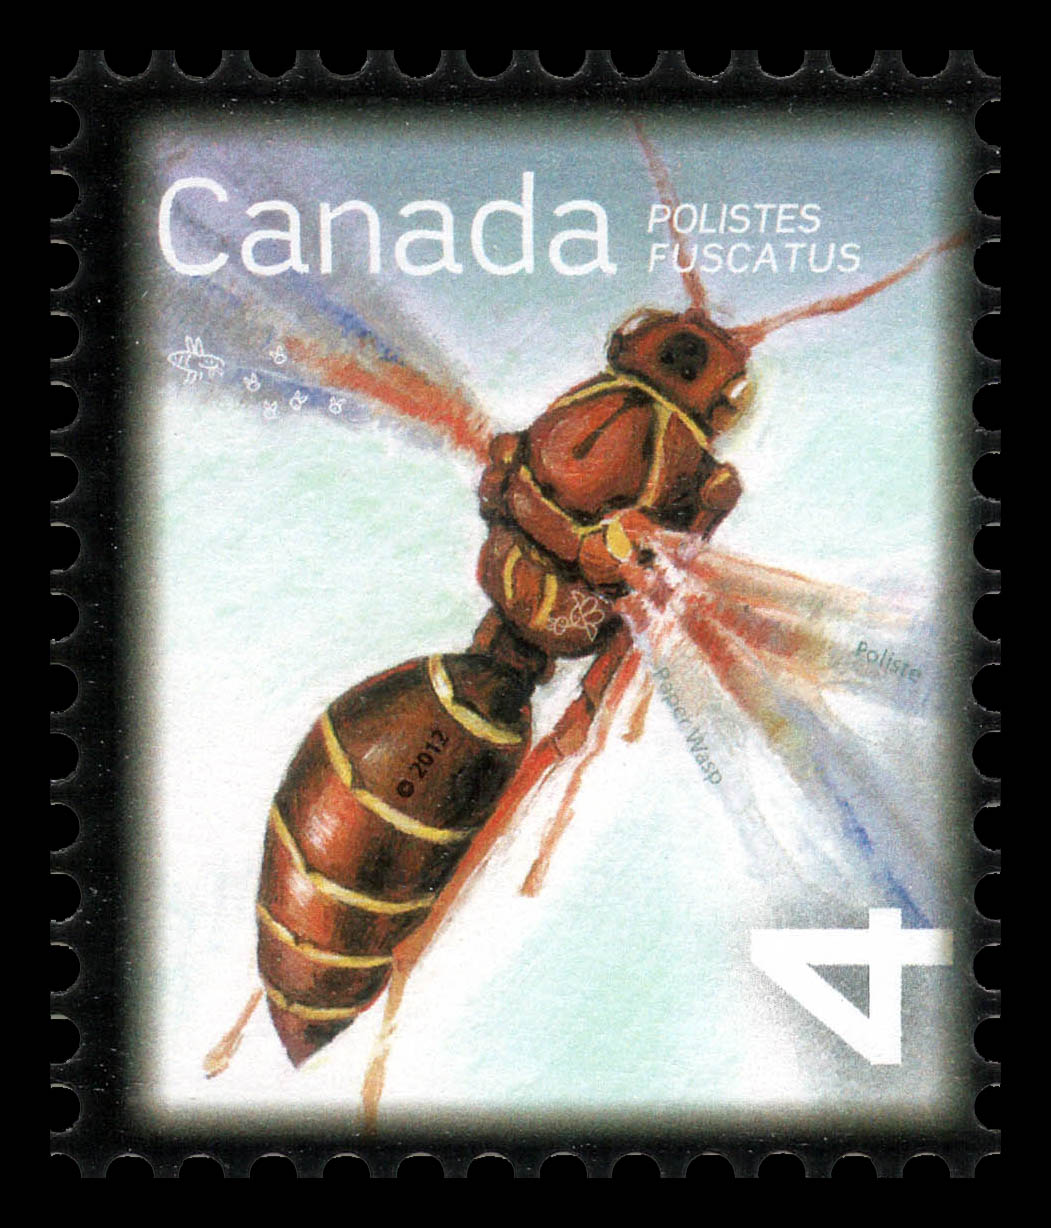 Paper Wasp - Polistes Fuscatus Canada Postage Stamp | Beneficial Insects